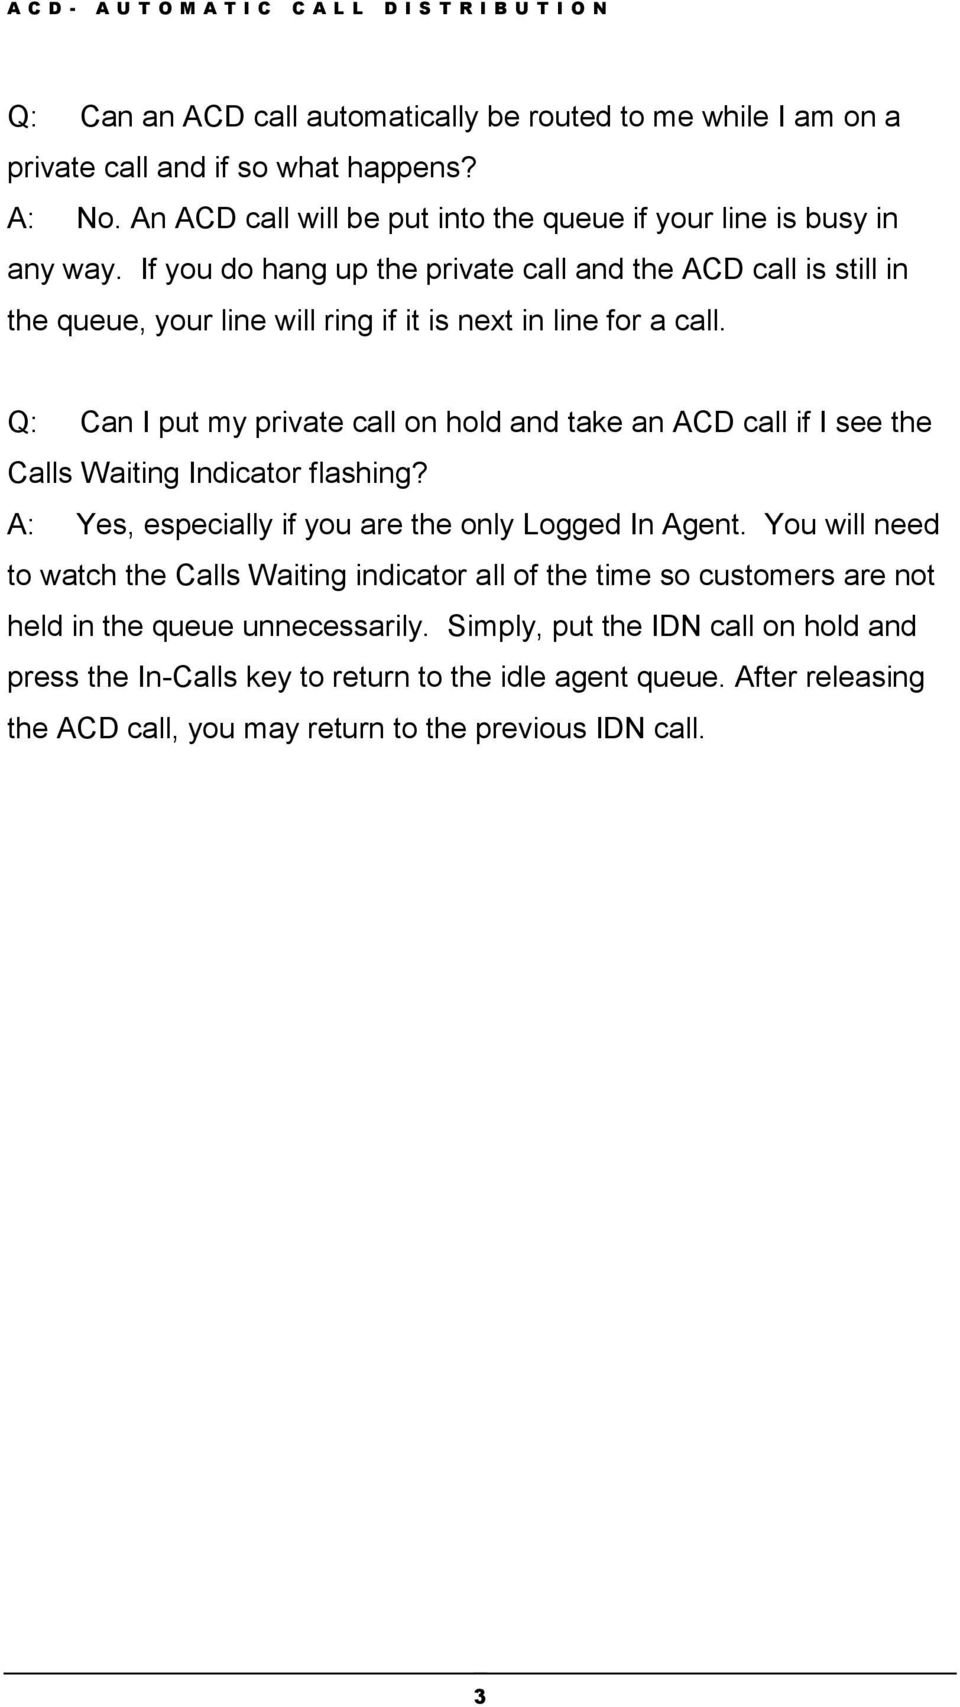 Q: Can I put my private call on hold and take an ACD call if I see the Calls Waiting Indicator flashing? A: Yes, especially if you are the only Logged In Agent.